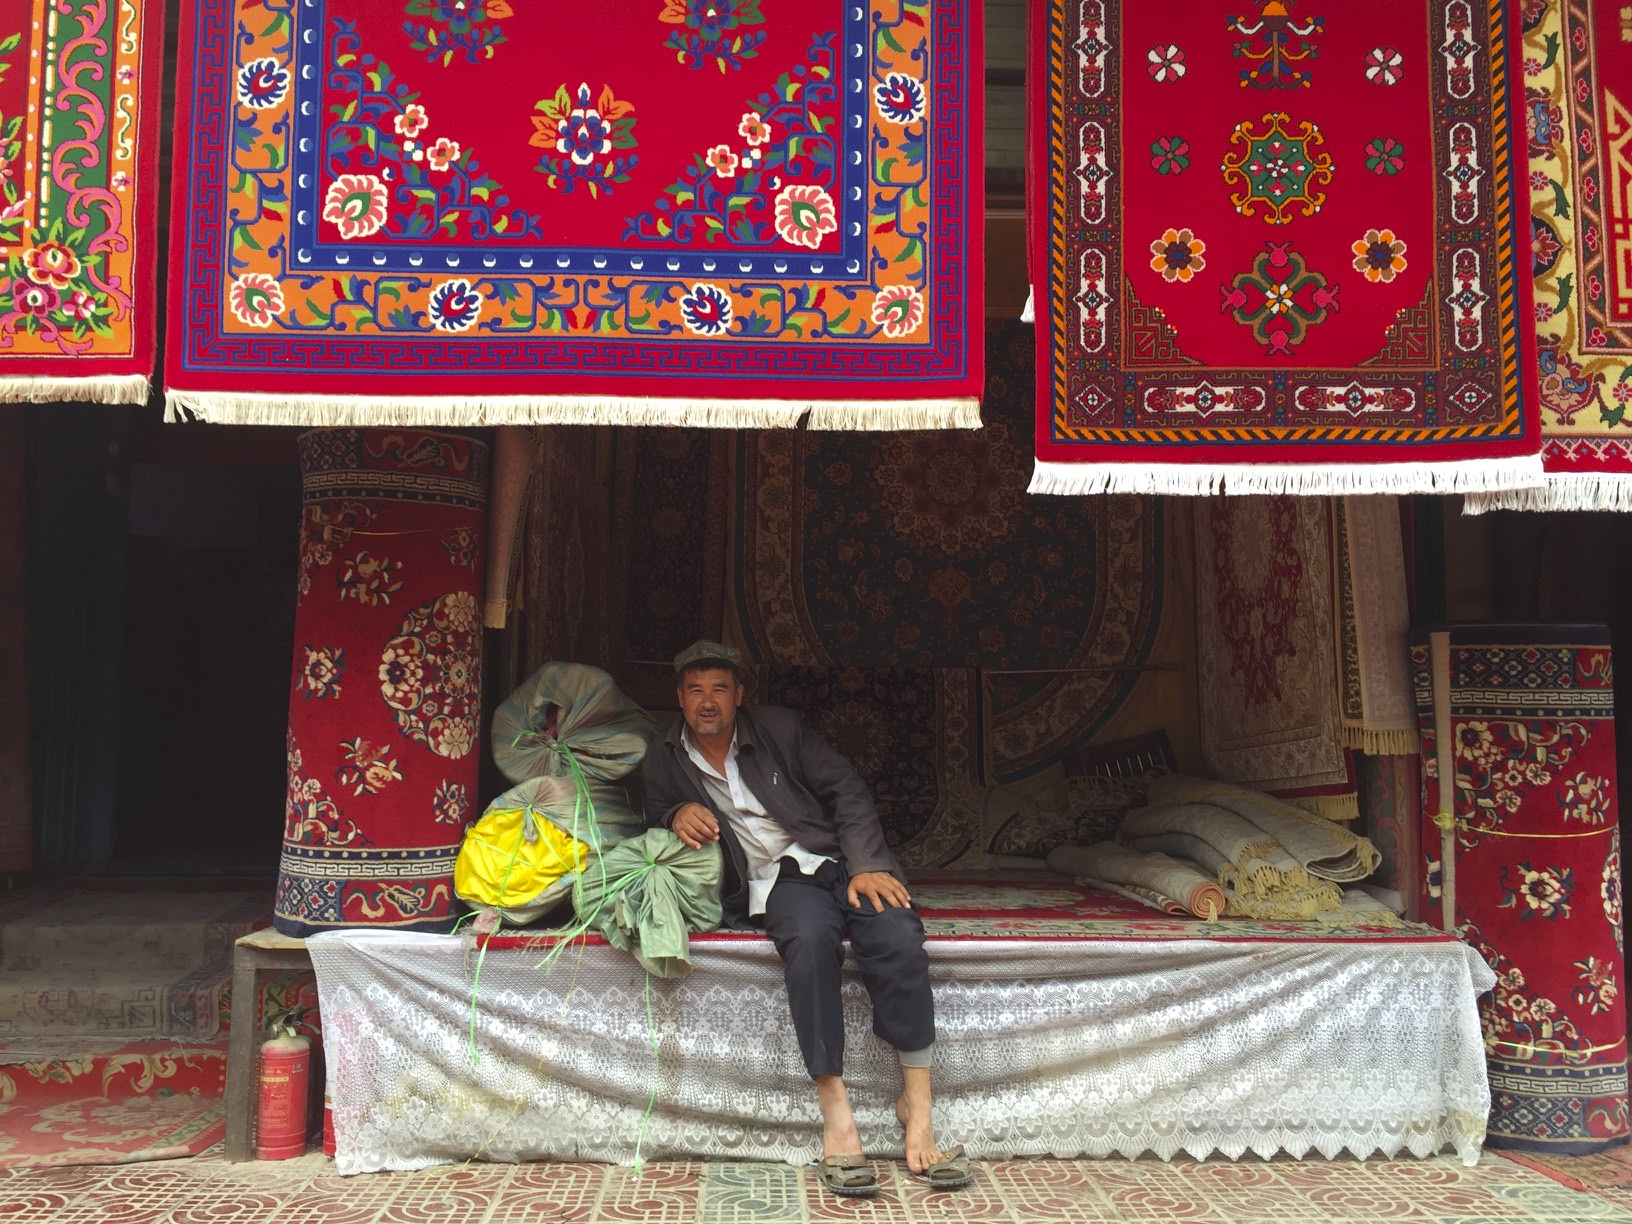 Carpet shop in Hotan